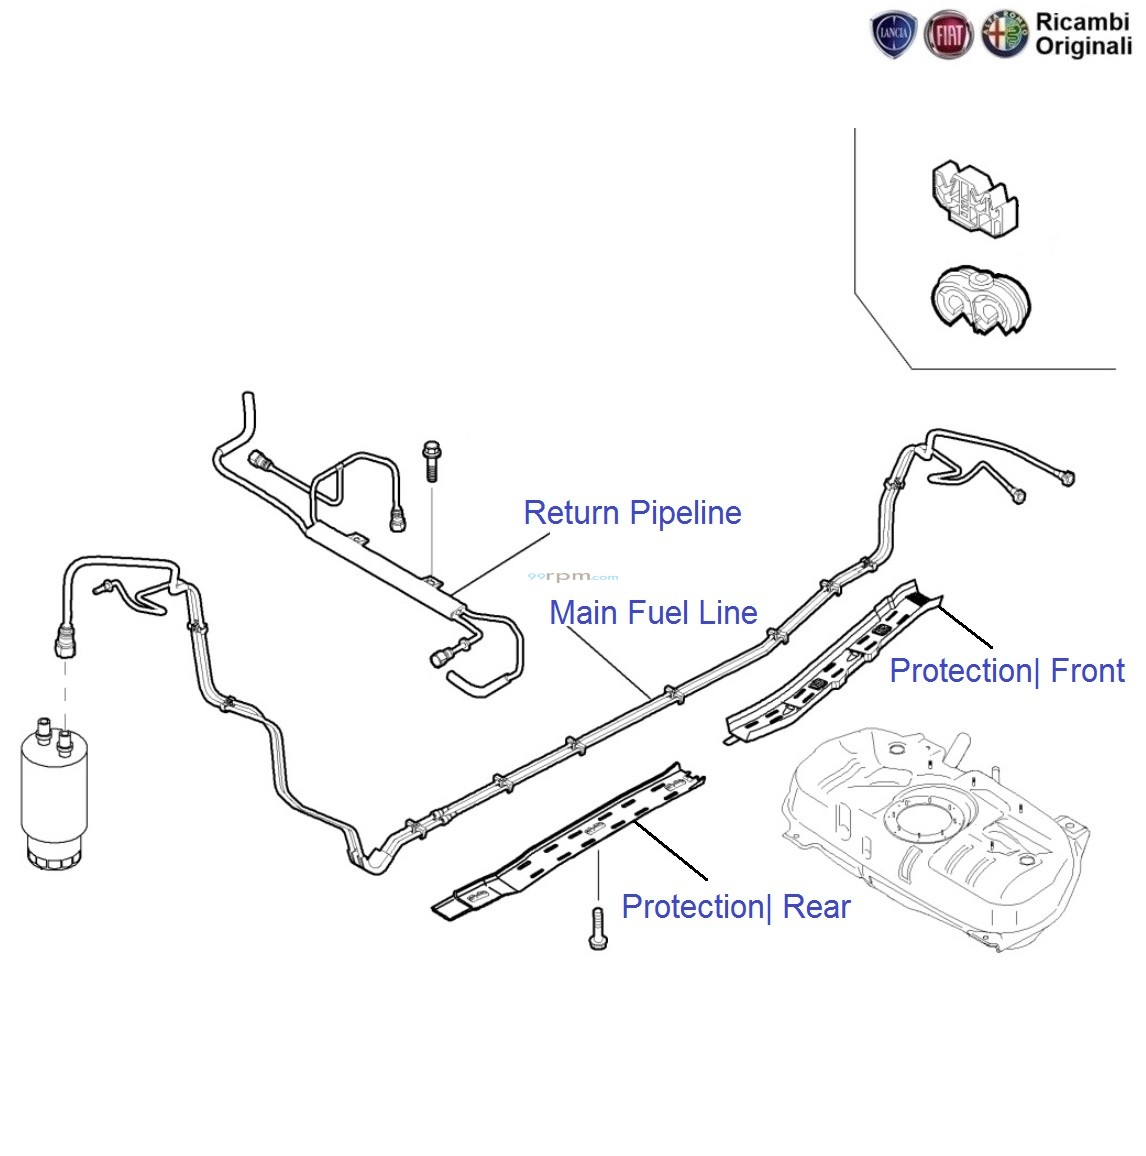 Fiat Punto 13 Mjd 90hp Fuel Pipe Line Vacuum Diagram